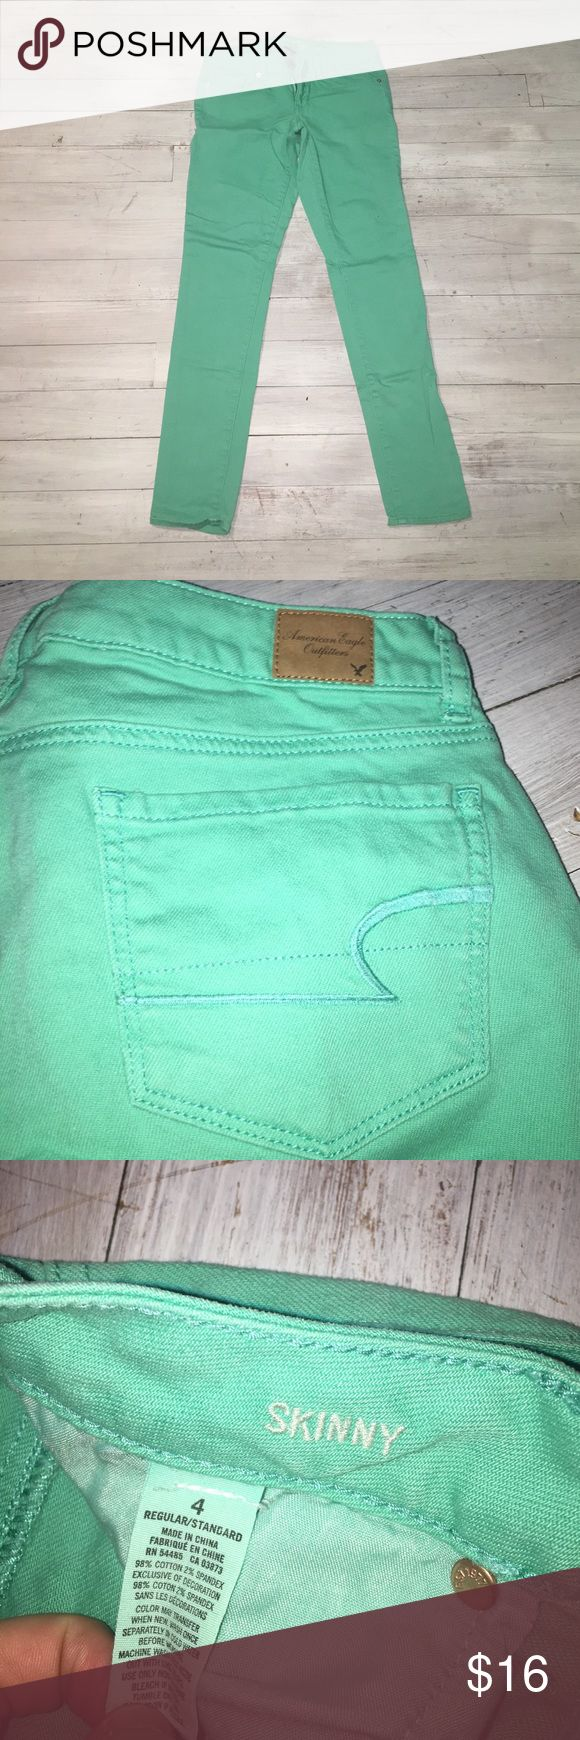 Mint Green Jeans Skinny stretch material American Eagle mint colored jeans! Perfect for spring!! Worn just a few times so great condition. Skinny jeans smaller at bottom American Eagle Outfitters Jeans